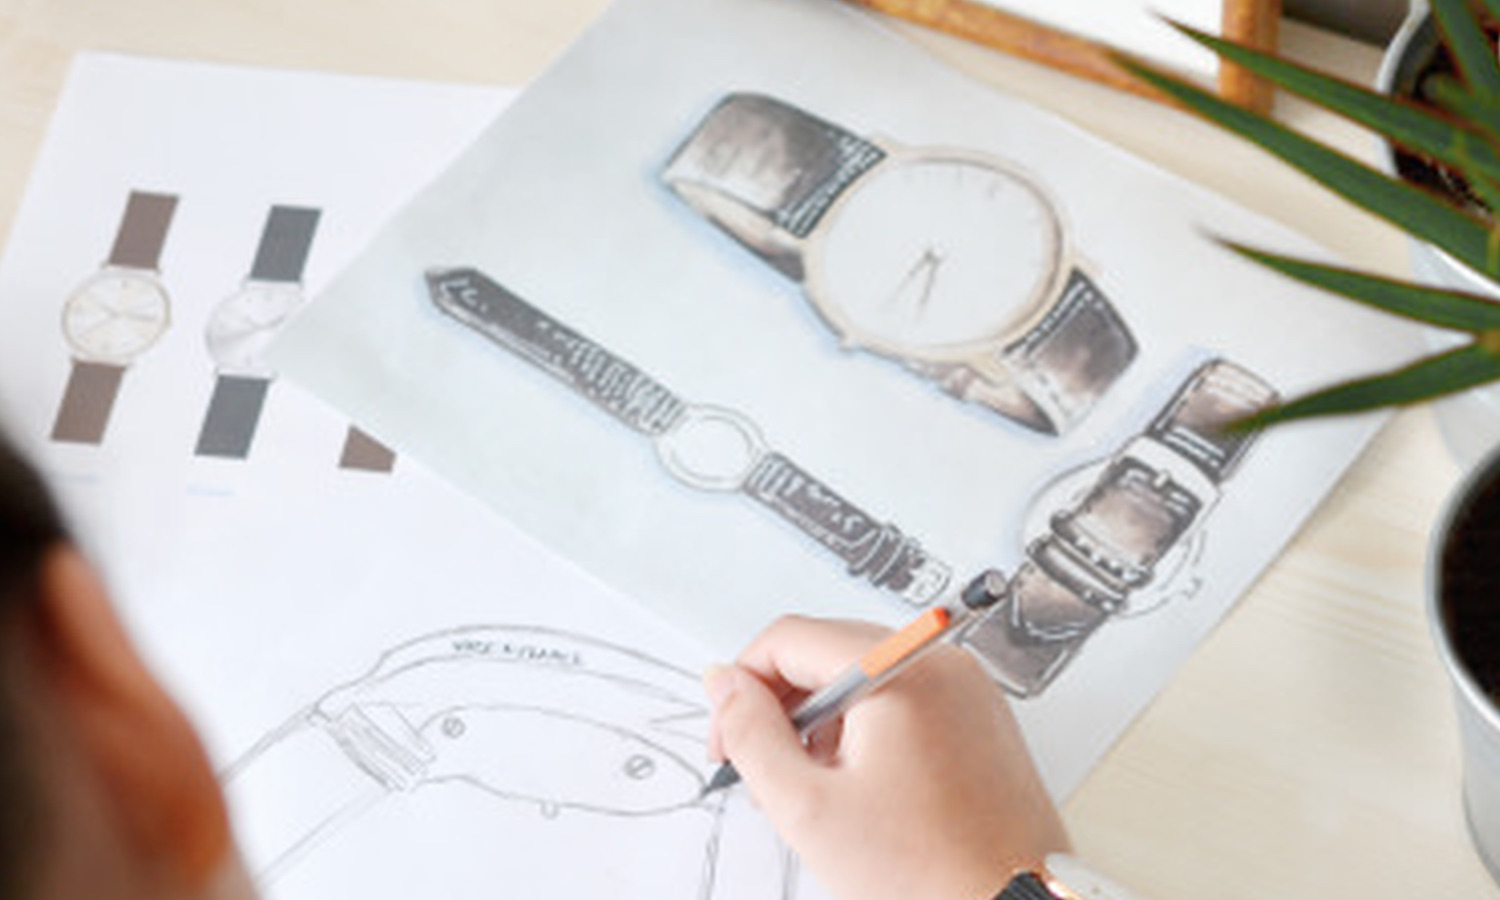 illustration - design of watches